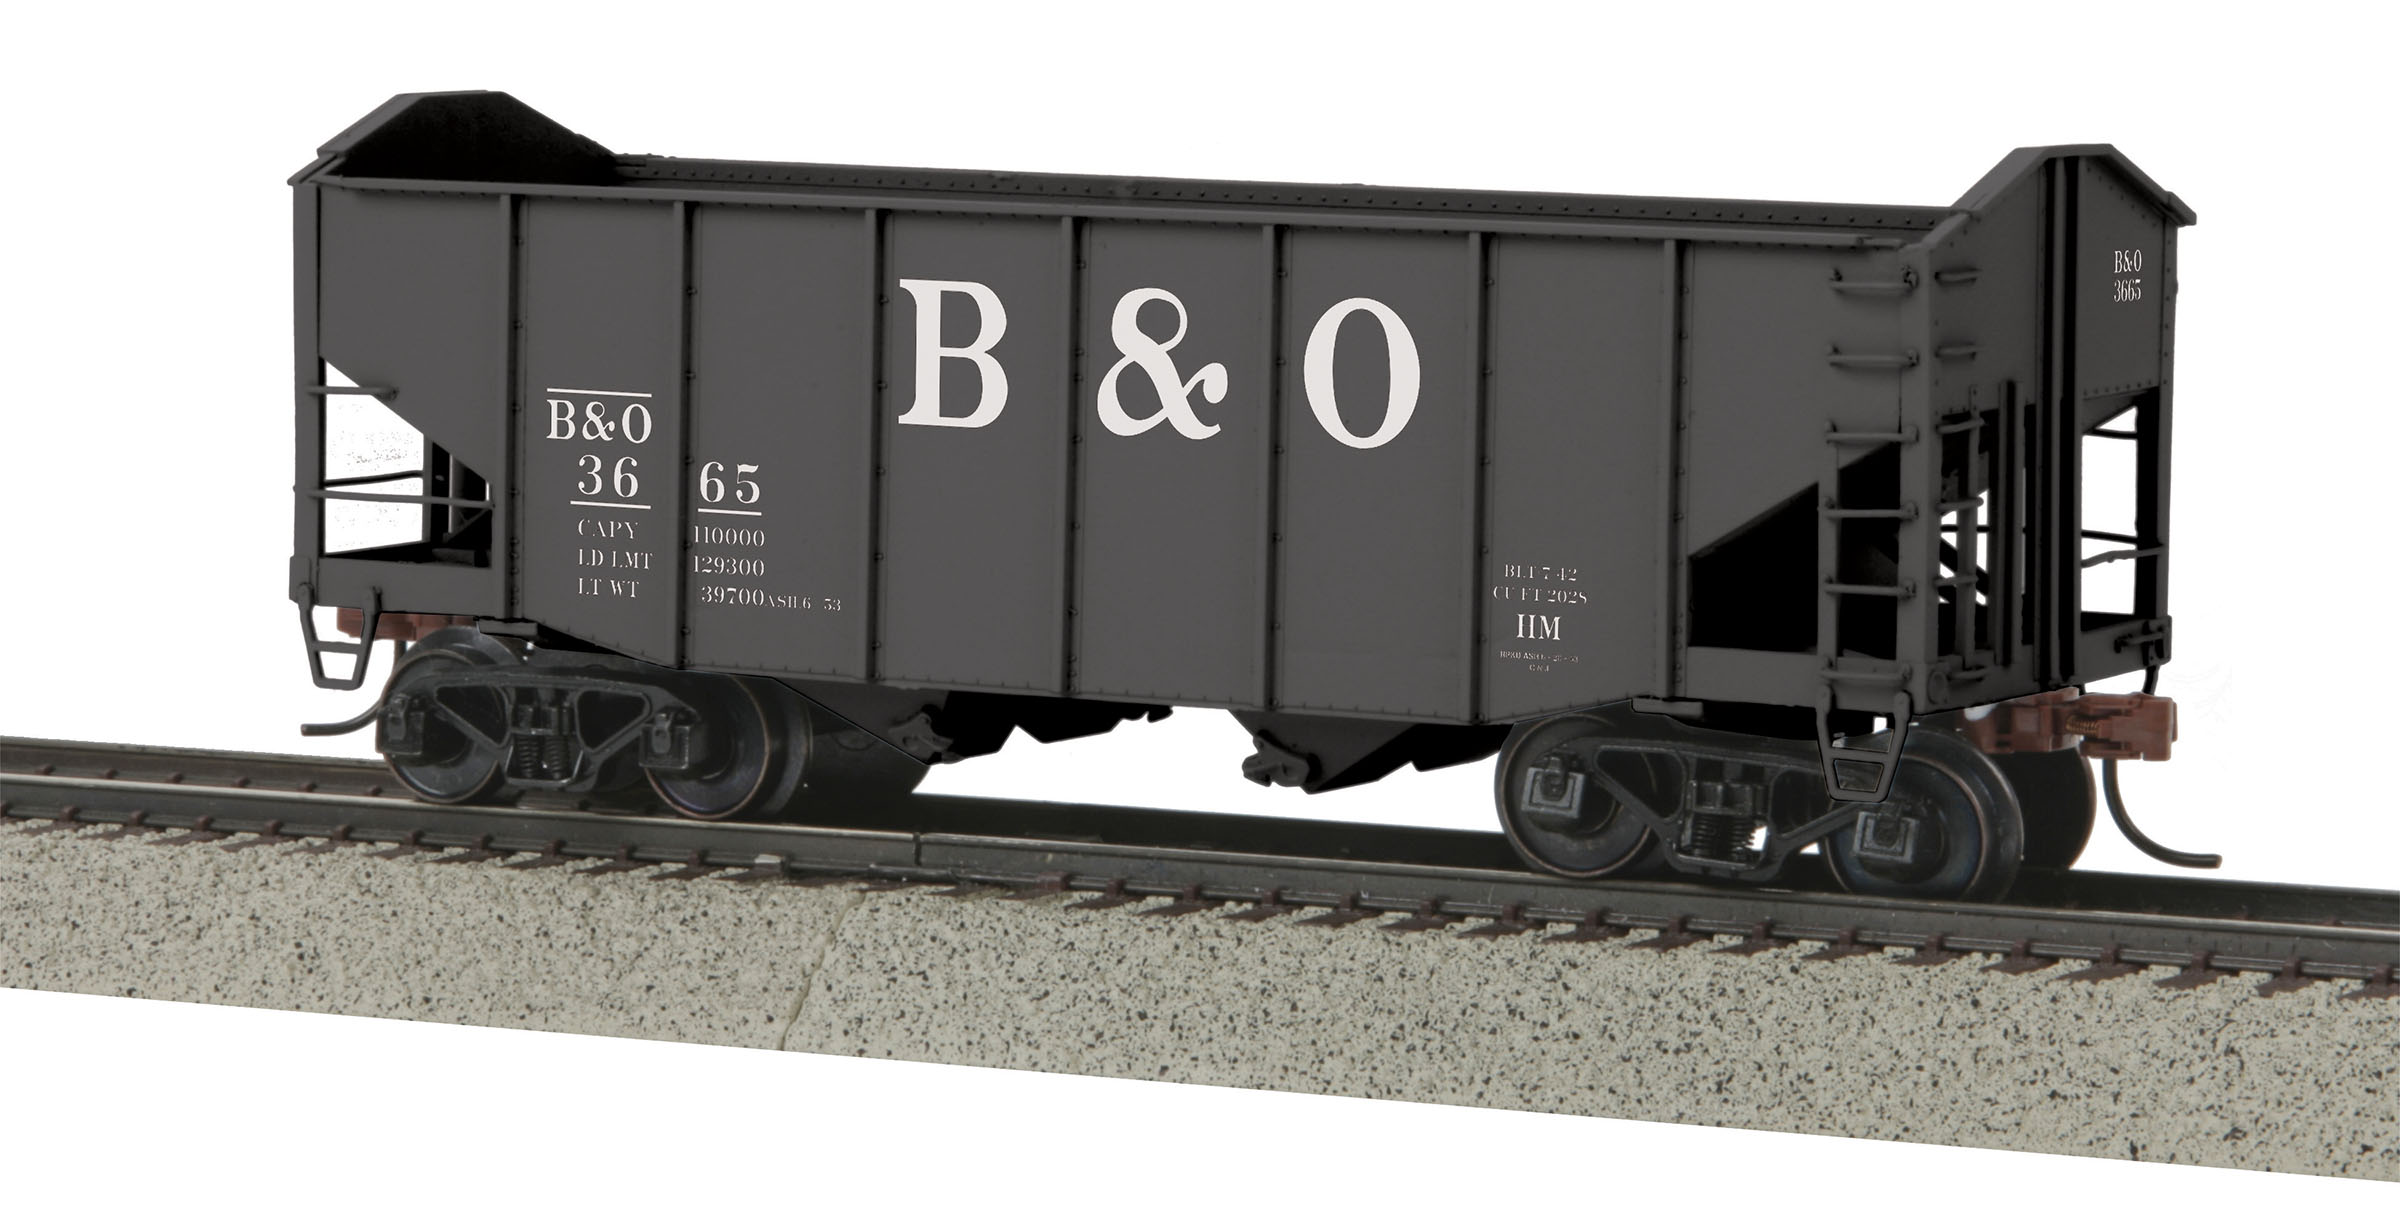 MTH 3575082 2-Bay Fish Belly Hopper Car Scale Wheels B&O #3665